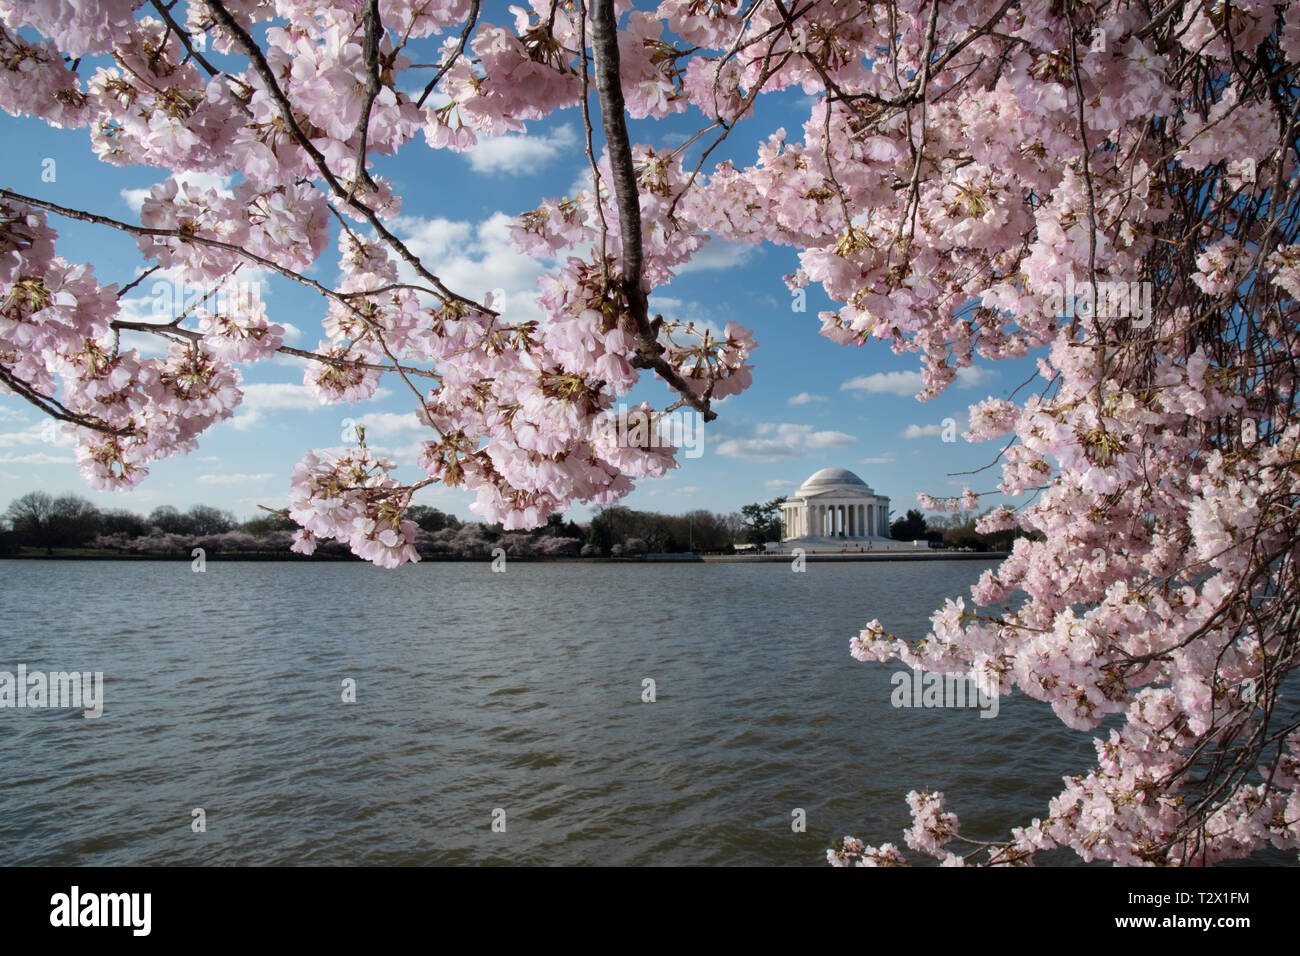 Cherry Blossoms In Peak Bloom Along The Tidal Basin With The Jefferson Memorial April 1 2019